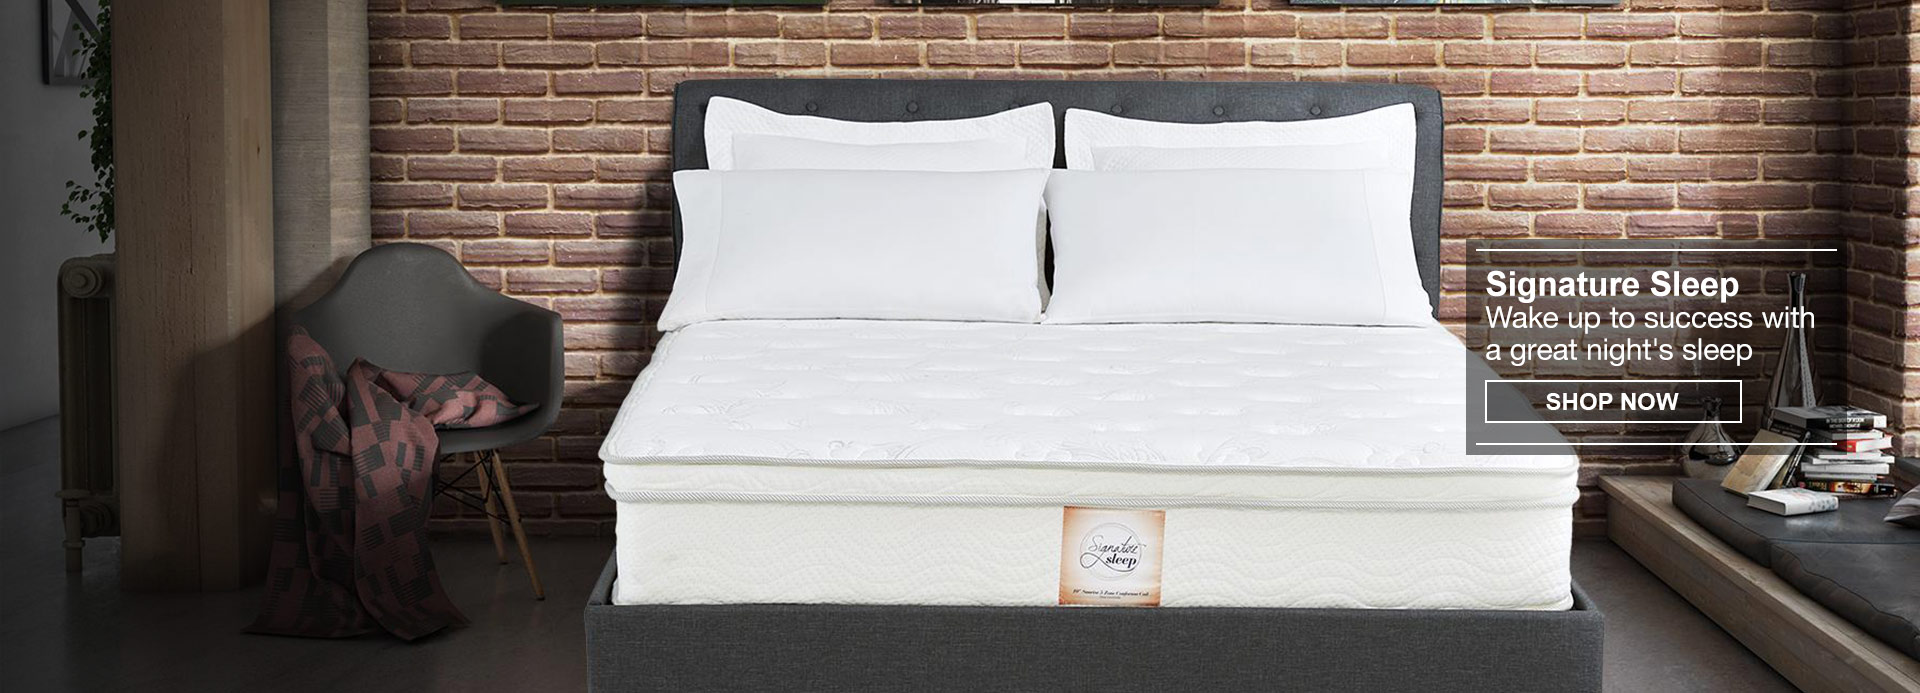 Signature Sleep Mattresses